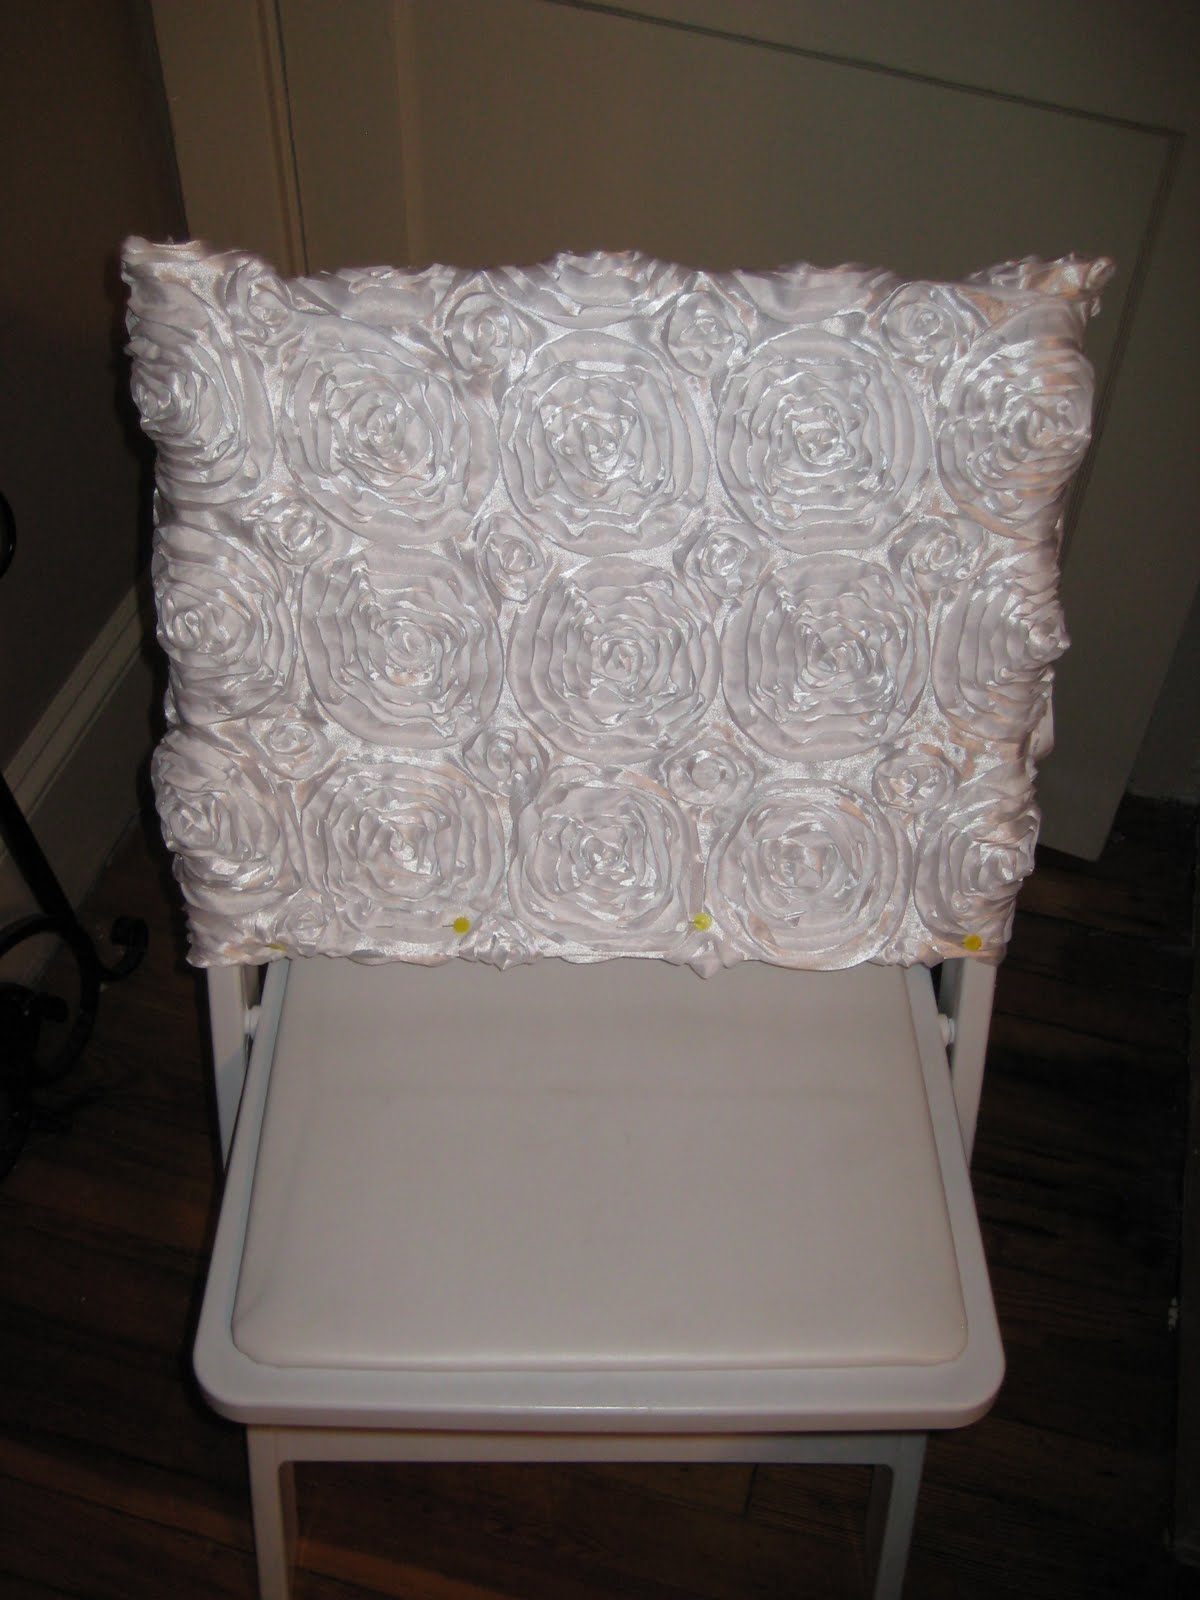 Bride And Groom Chair Covers Medical Toilet Image For All Things Creative Bridal Shower To Be